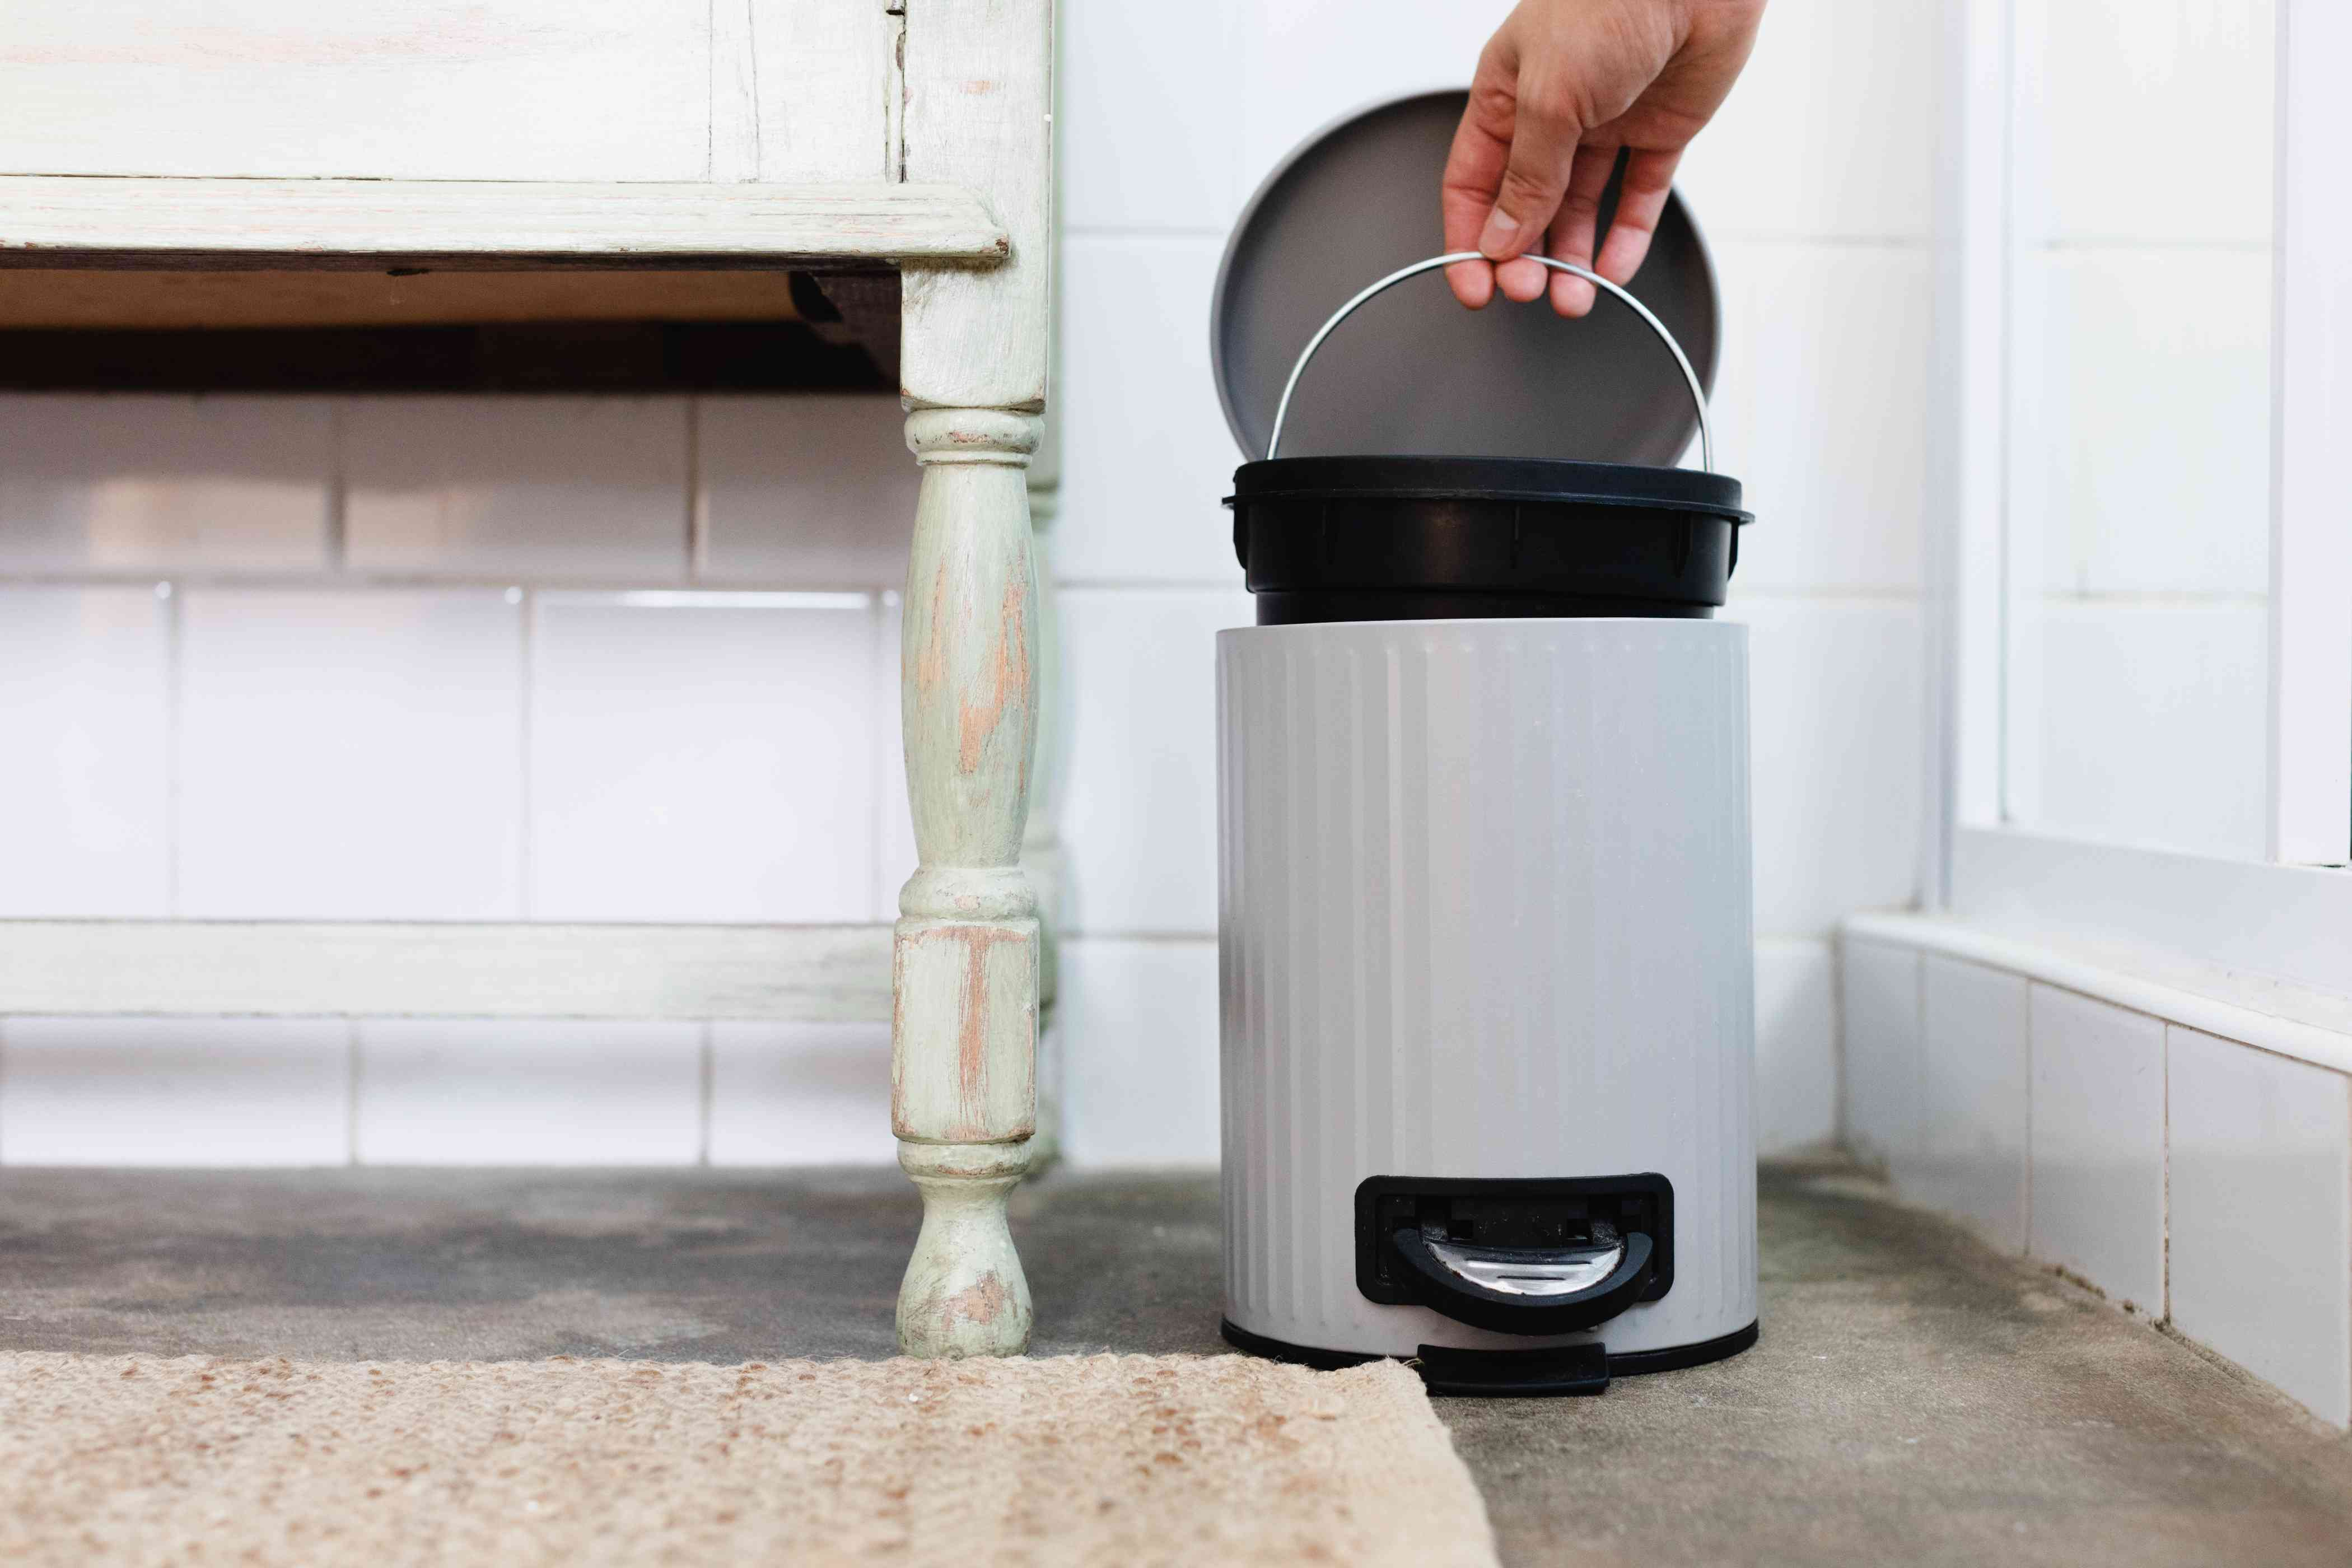 Bathroom trash can being lifted to removed bathroom odors